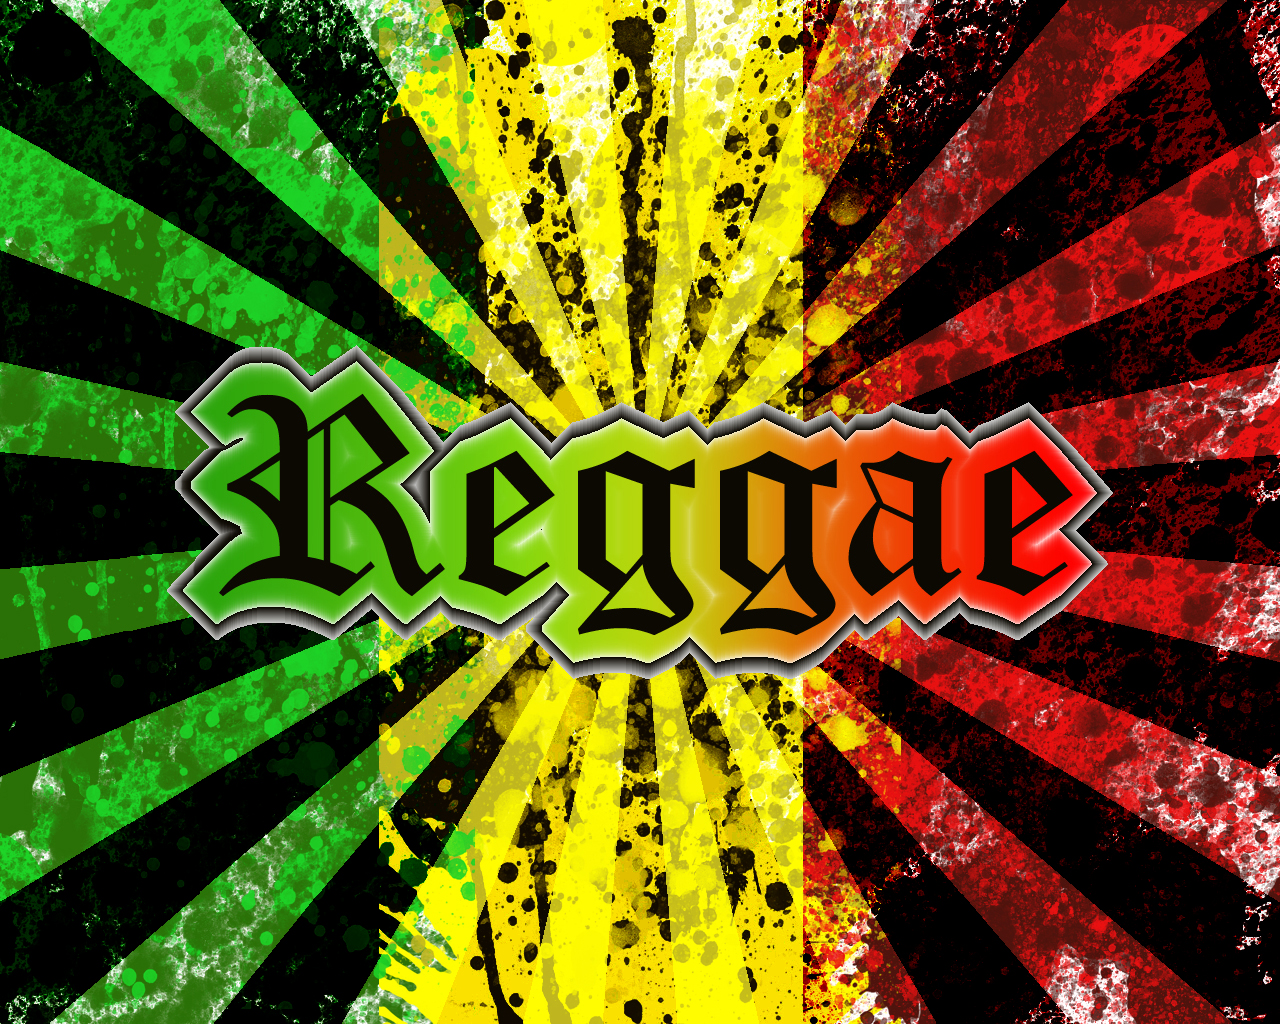 If you dig Reggae, post up your favorite bands, songs ...